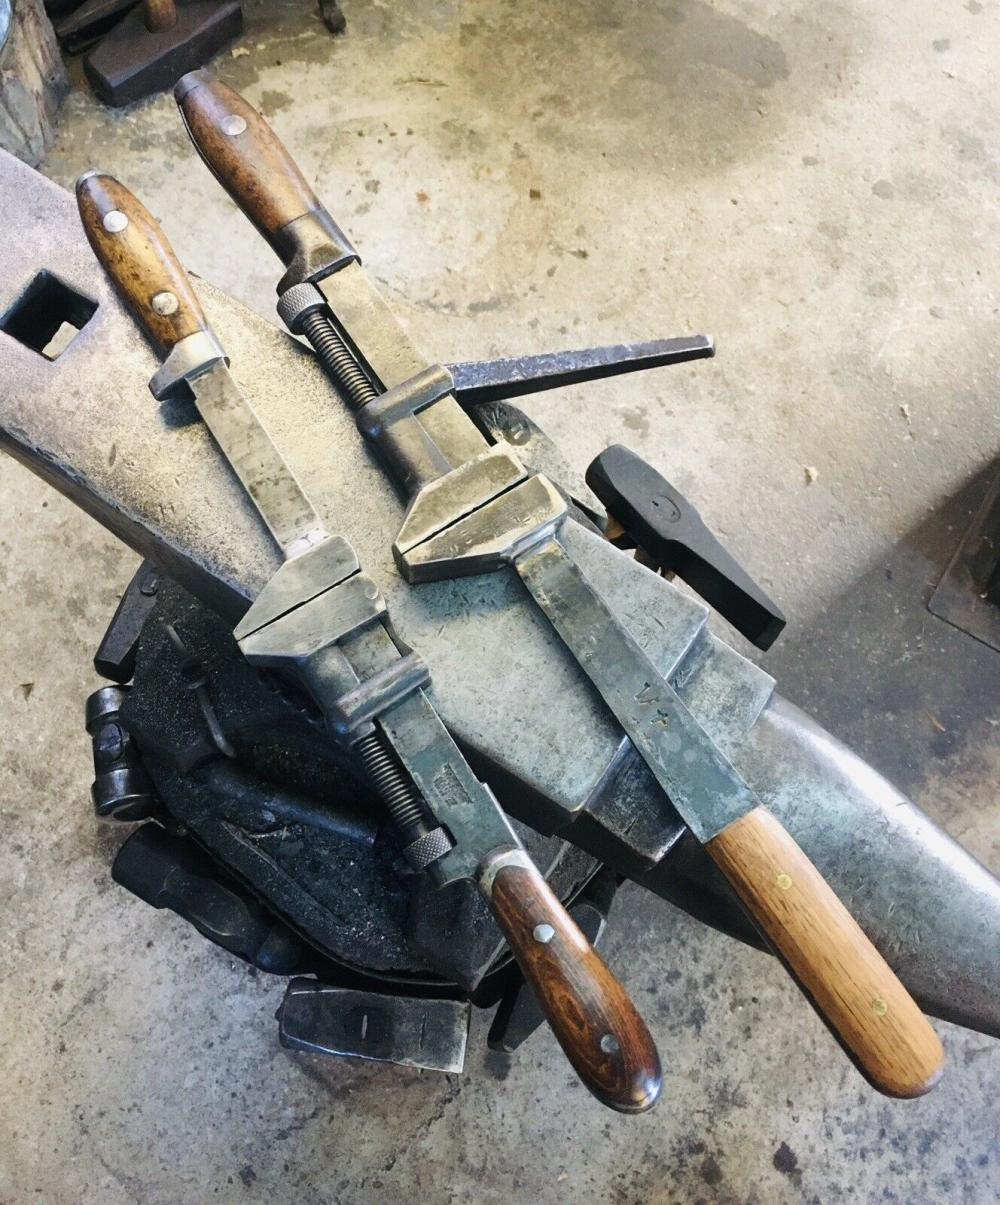 Name:  Twisting Wrenches.jpg Views: 24 Size:  195.5 KB